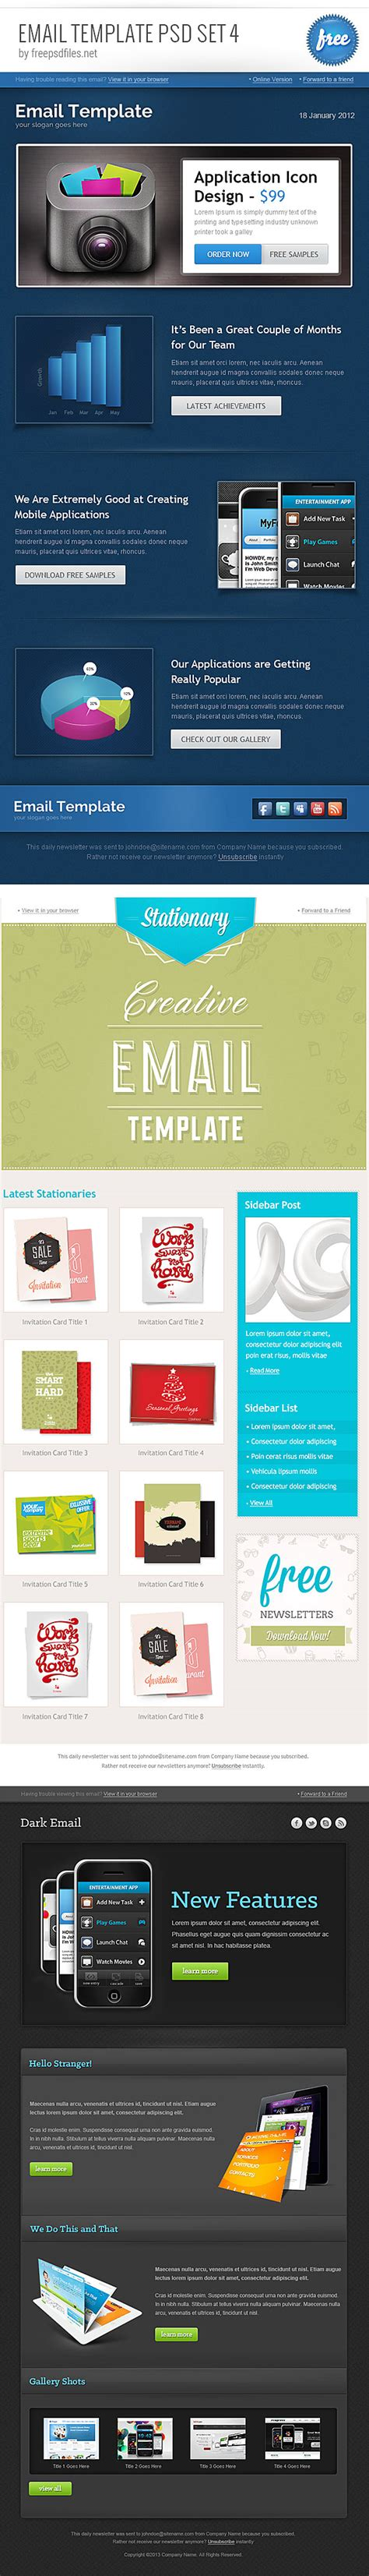 email template psd free email template psd set 4 free psd files